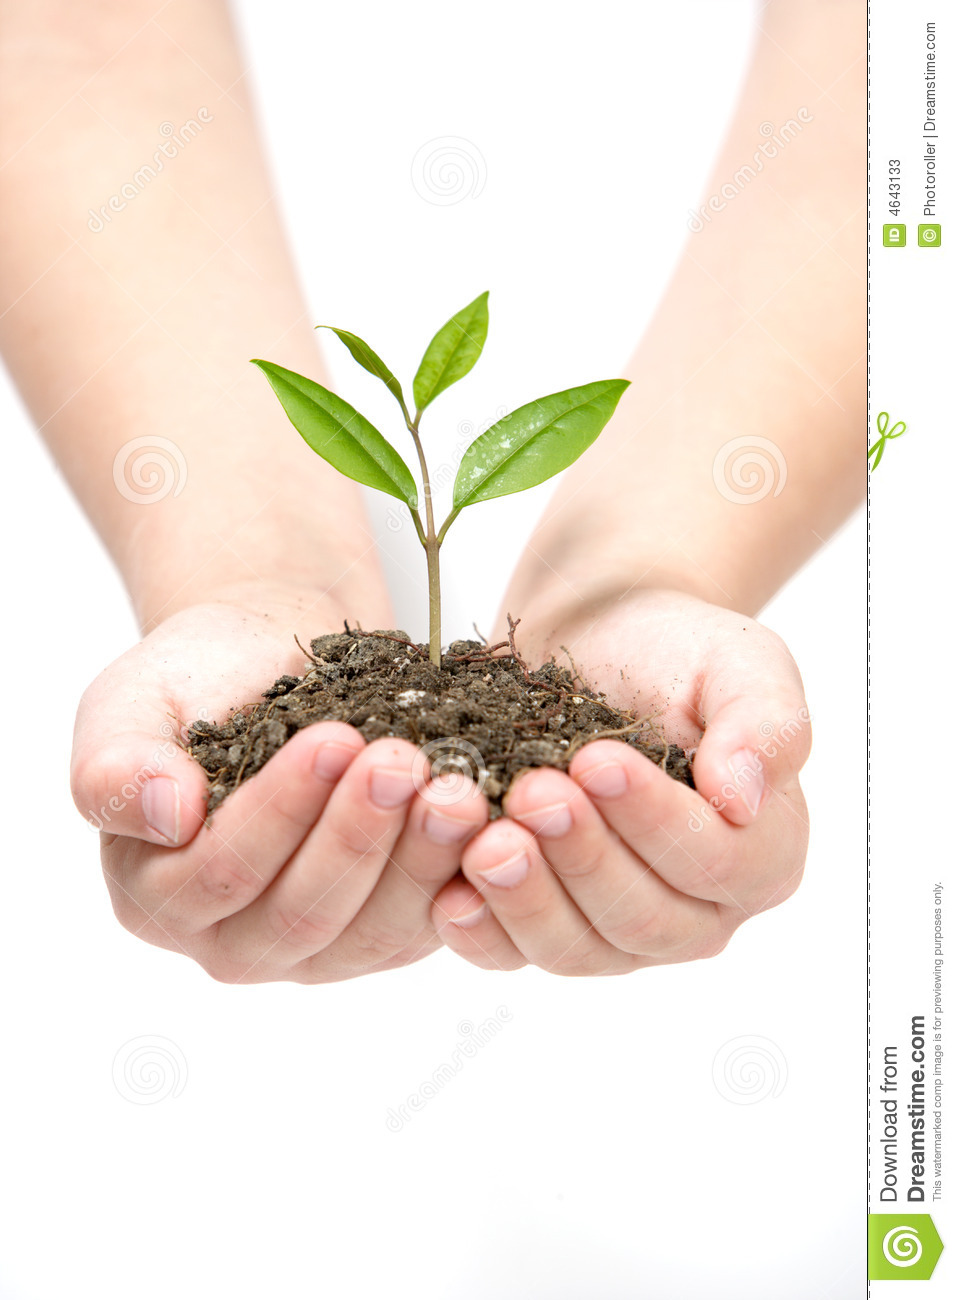 research paper on biofertilizer Biofertilizer the neutrality of this article is disputed relevant discussion may be found on the talk page please do not remove this message until conditions to.